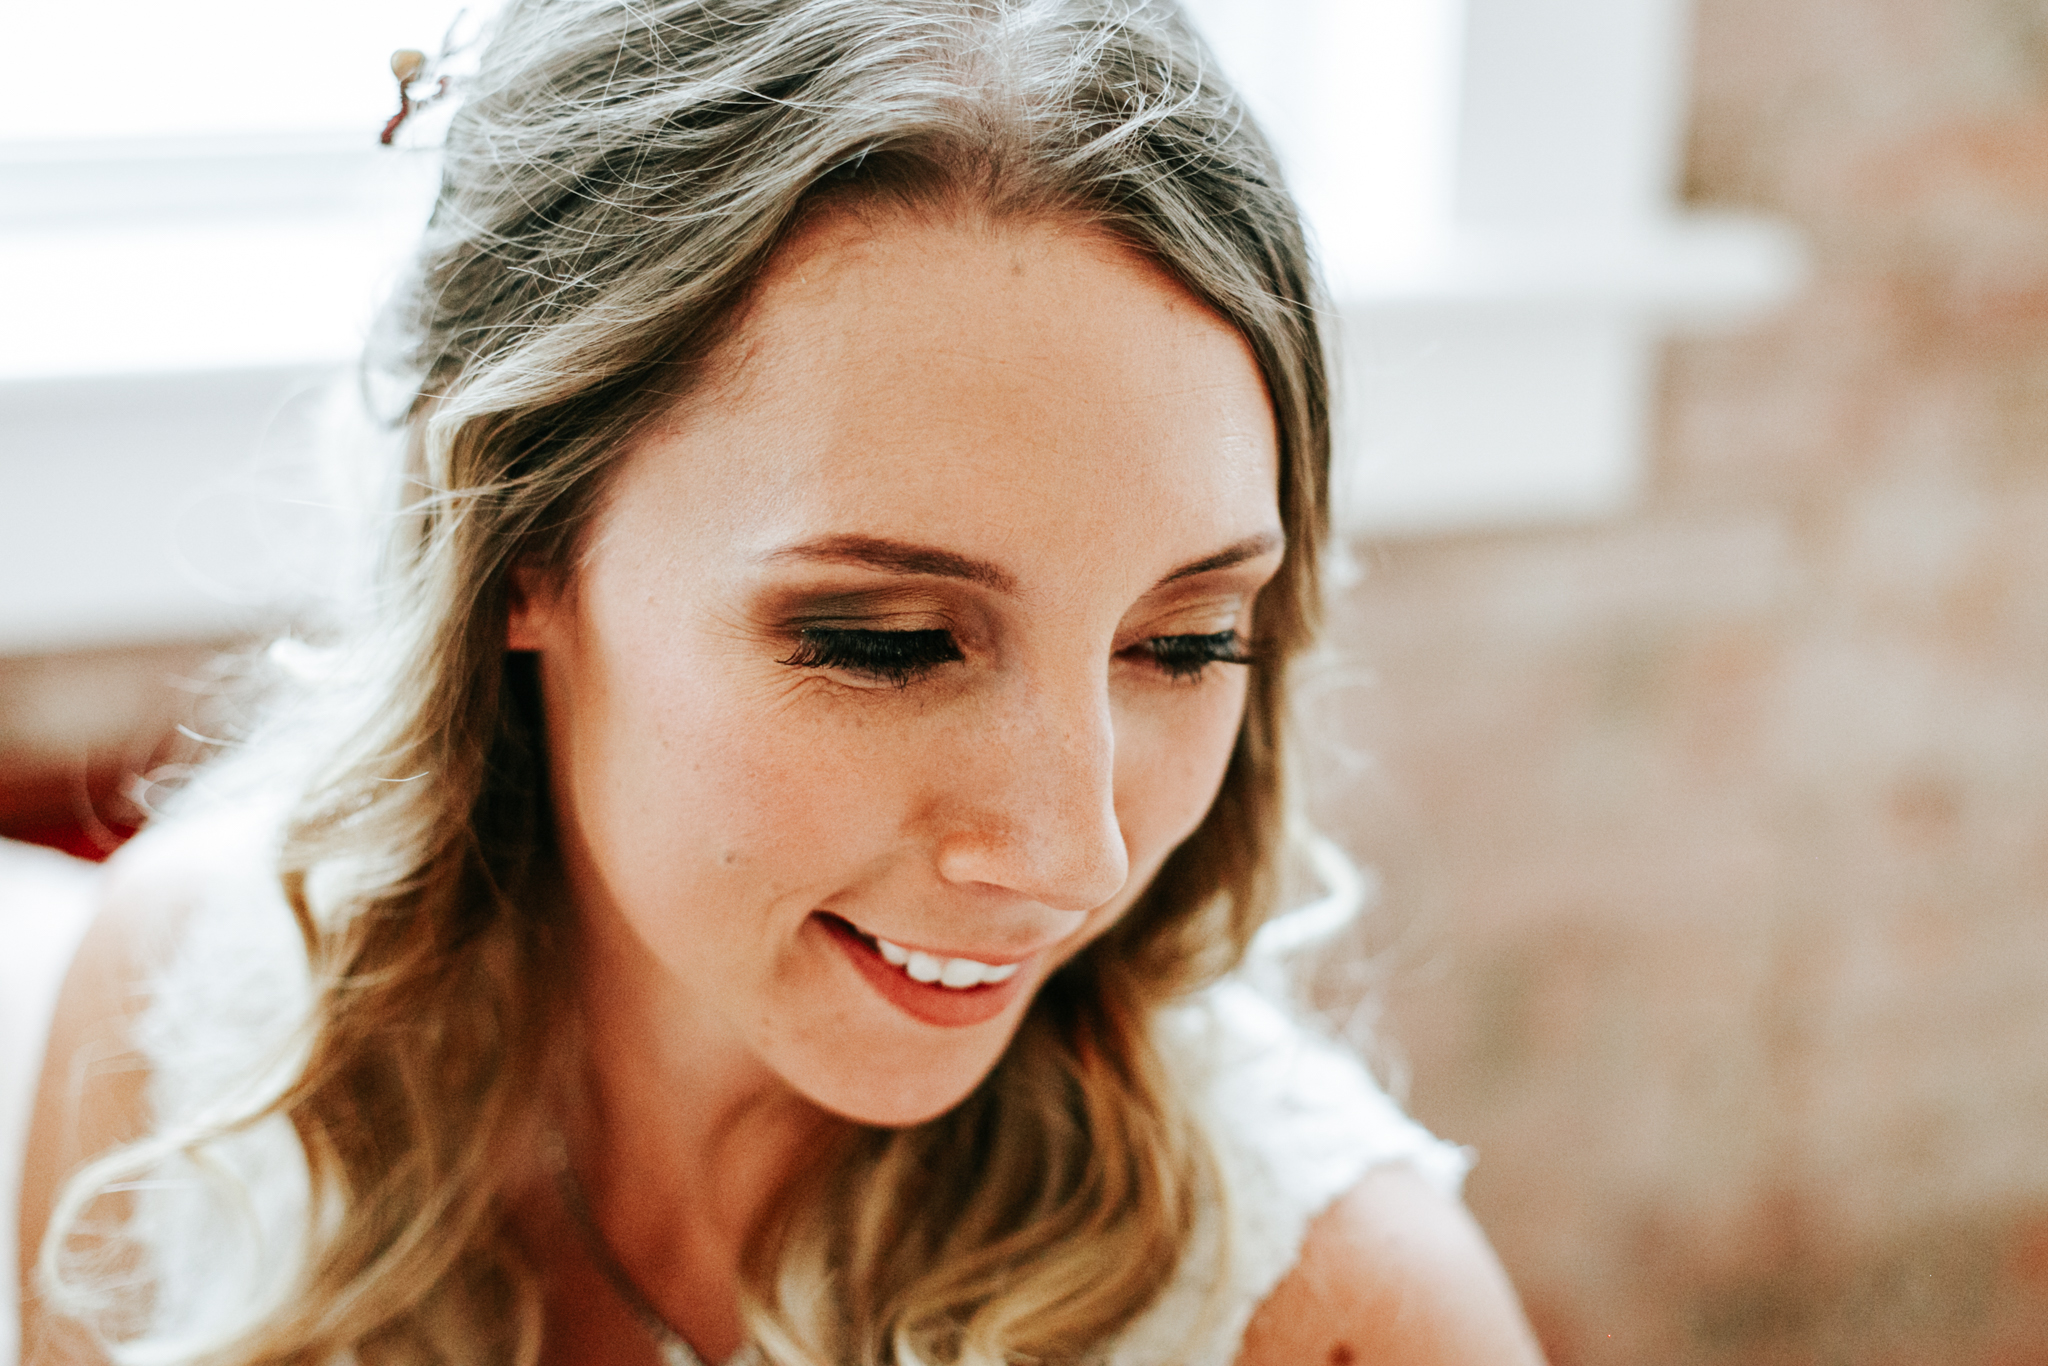 lethbridge-photographer-love-and-be-loved-photography-designed-to-dwell-wedding-katie-kelly-photo-image-picture-6.jpg